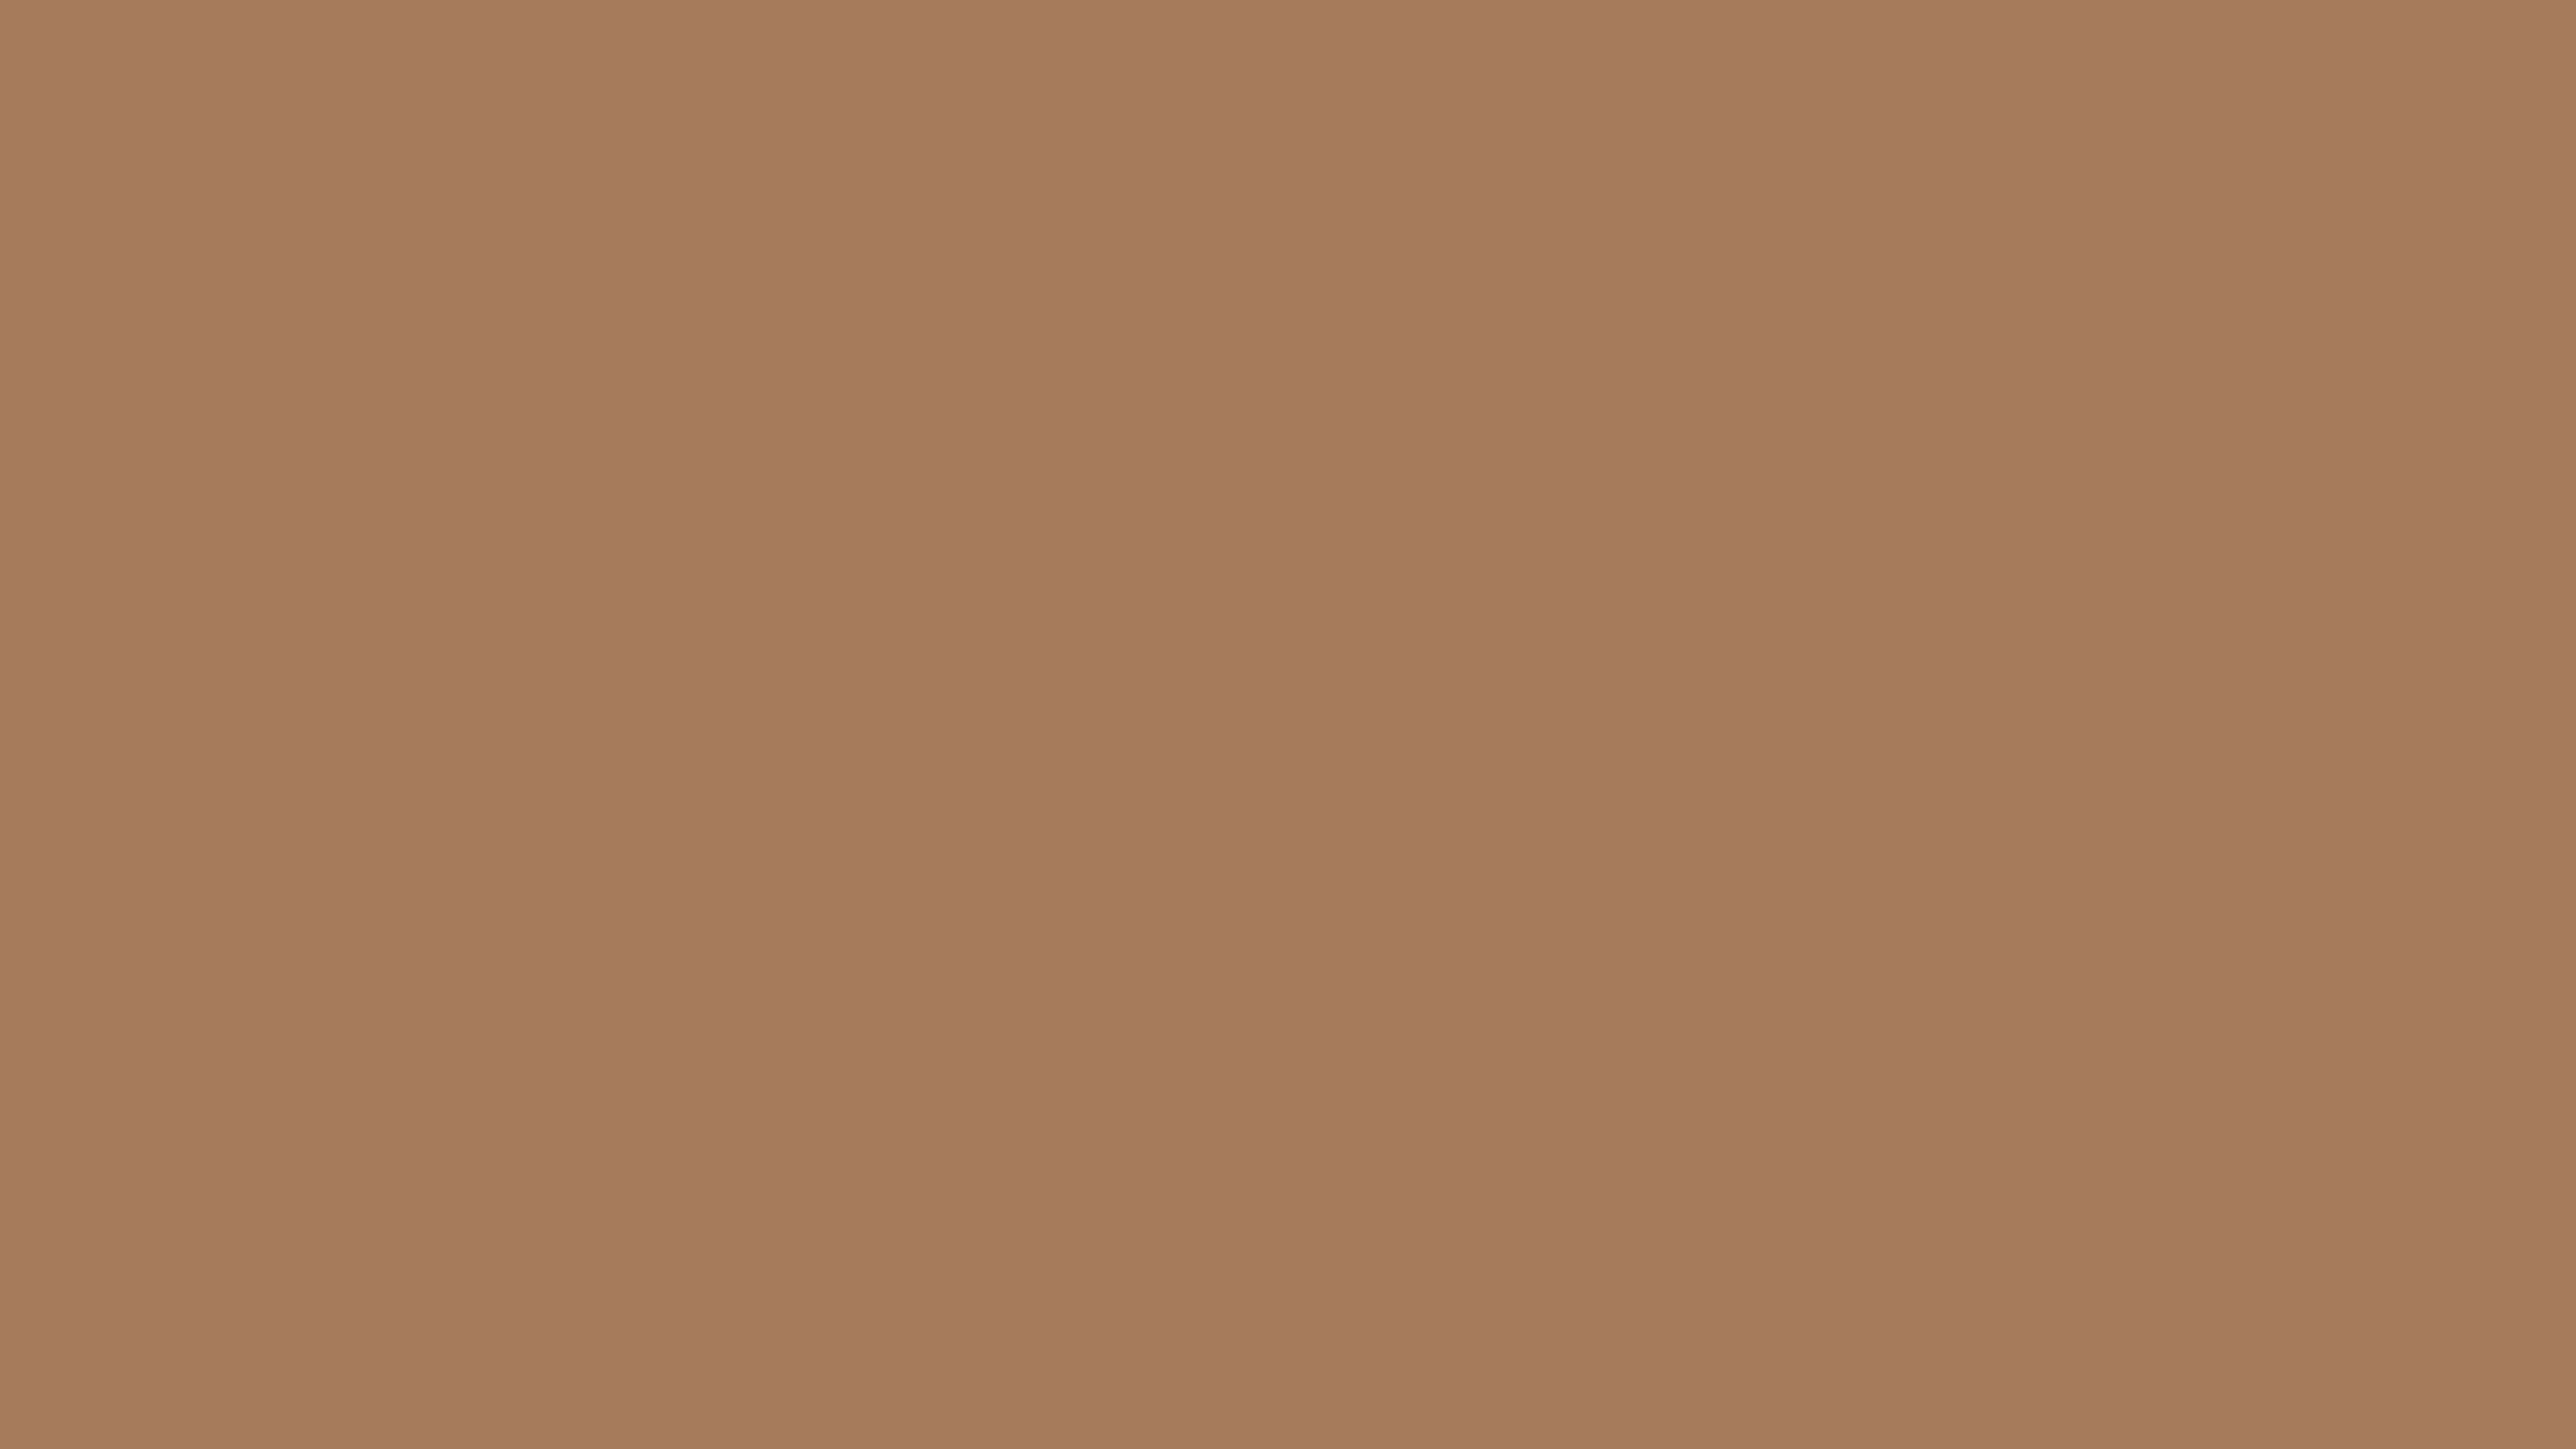 3840x2160 Tuscan Tan Solid Color Background